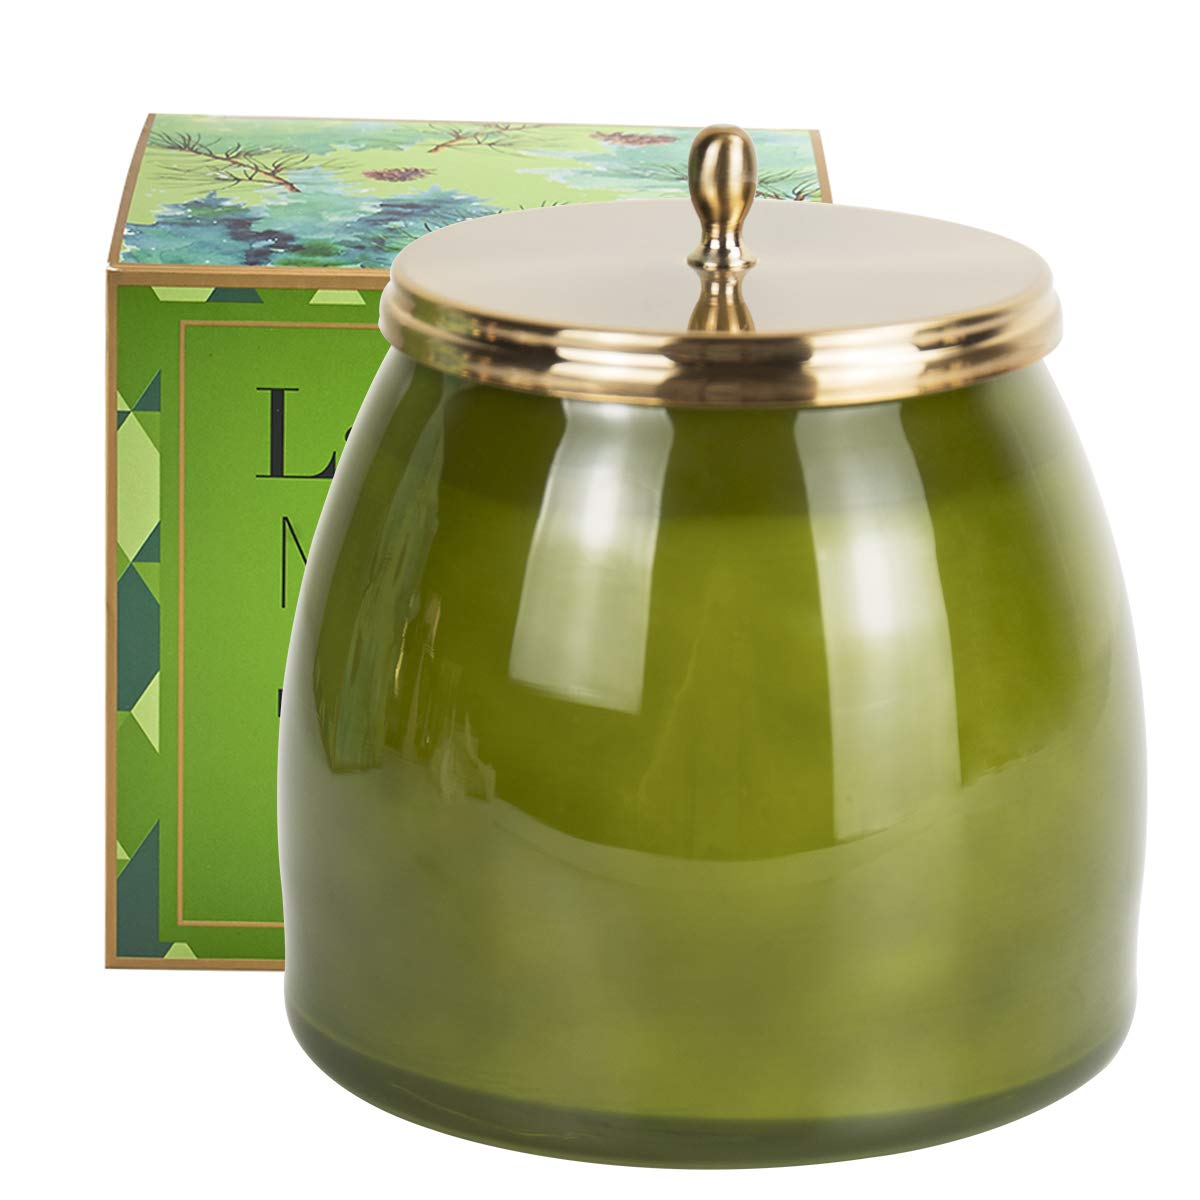 LA JOLIE MUSE Pine Scented Candle Balsam Cedar Fir Large Glass Jar Candle, Christmas Candle, Holiday Candle, Natural Soy Wax, 18.34OZ